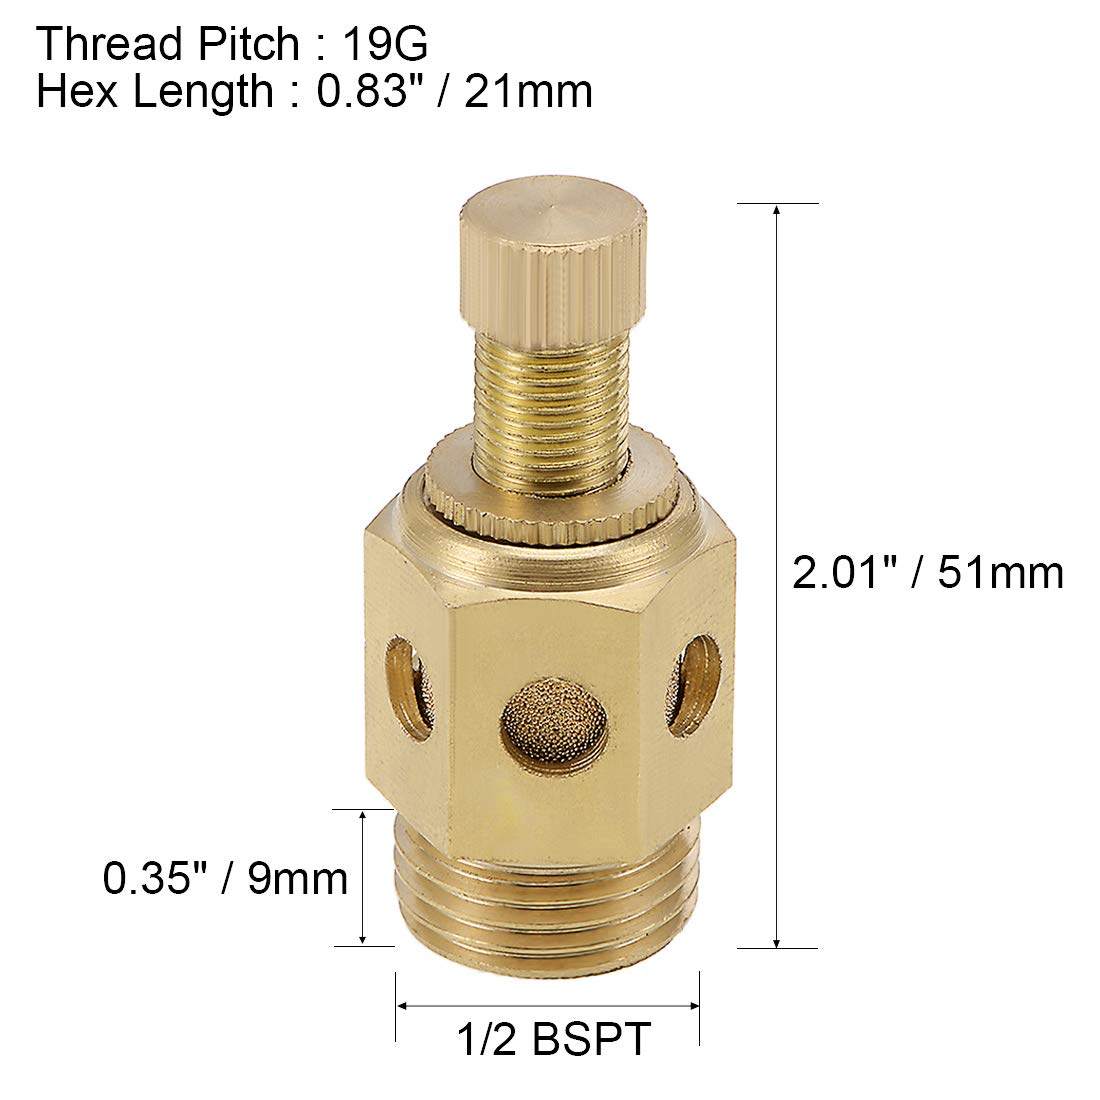 uxcell Top Adjustable Pneumatic Air Exhaust Muffler Copper 3//8 BSPT Gold 2pcs